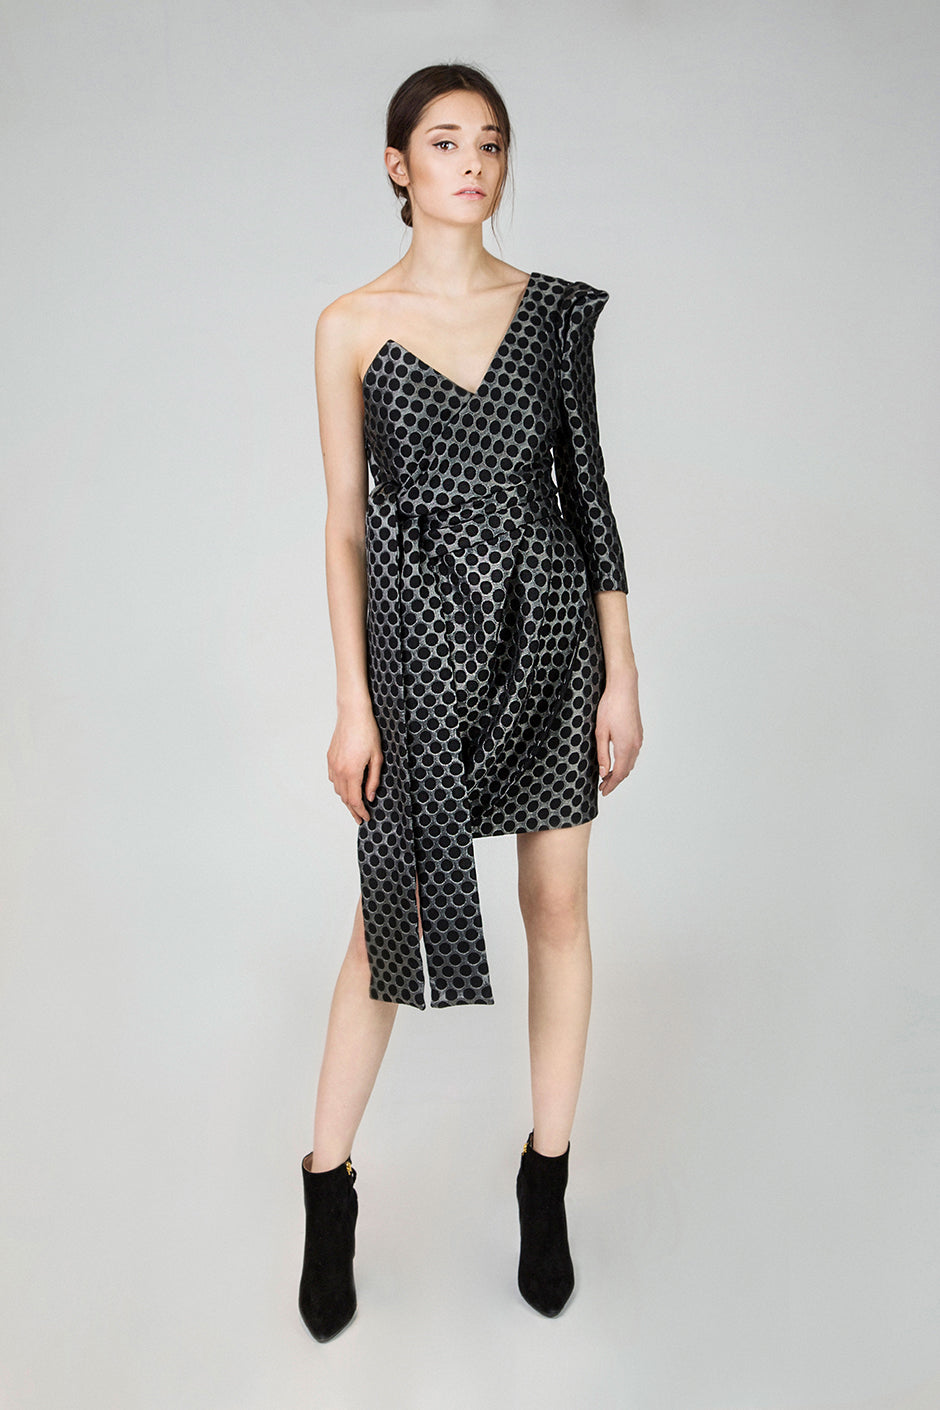 Taylor Dotted Cotton Dress